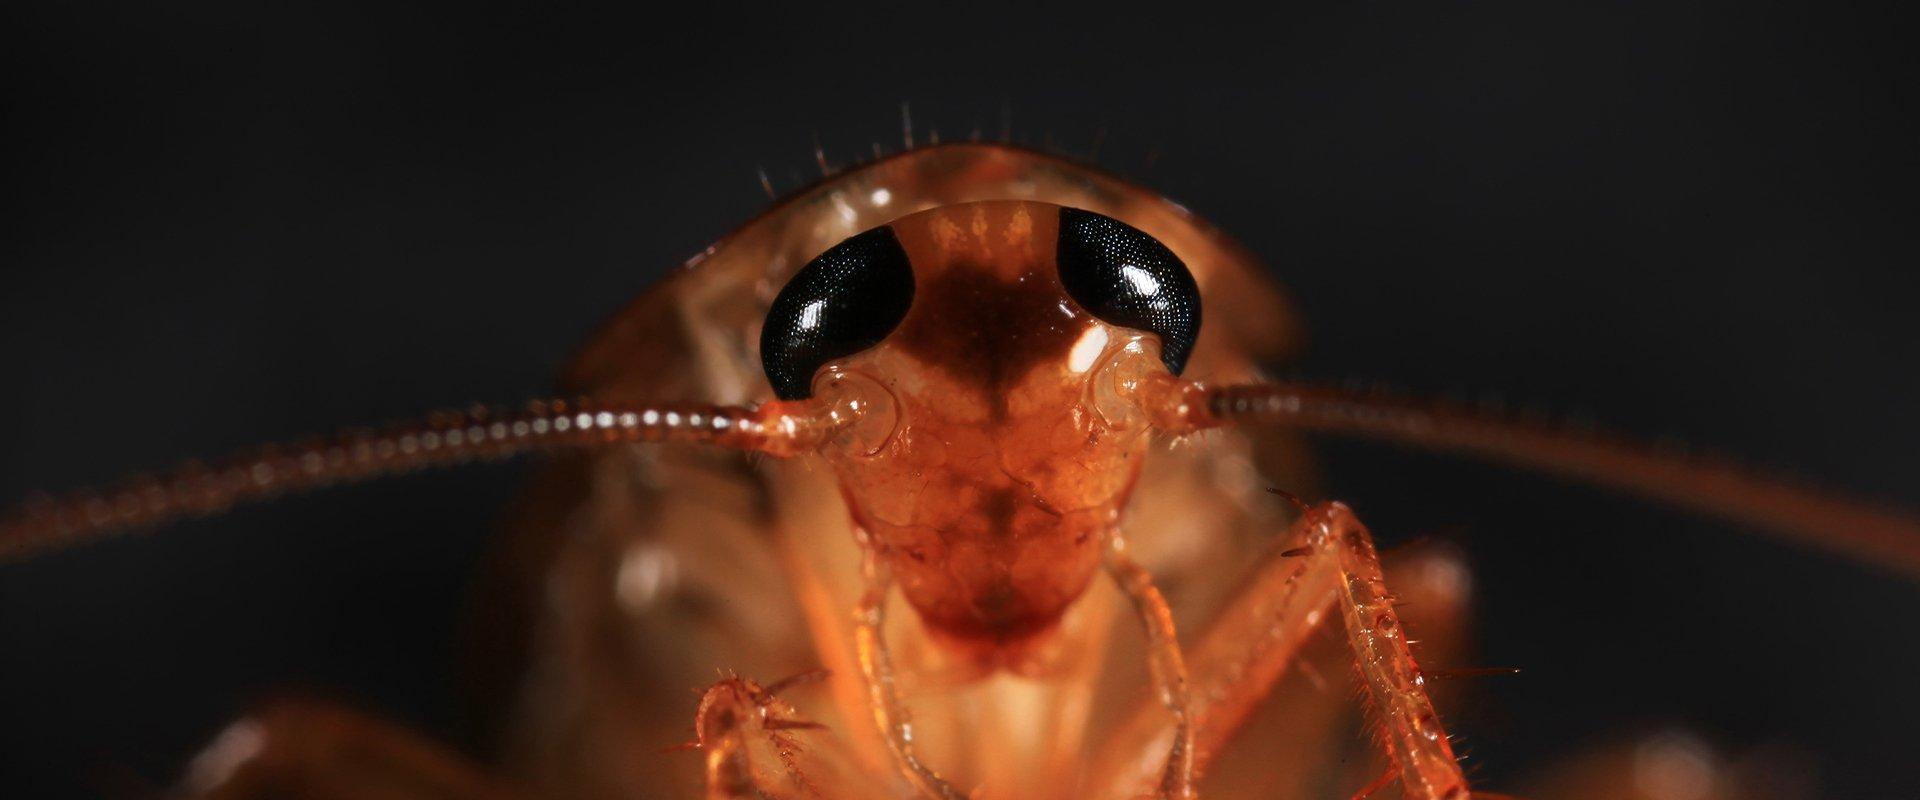 american cockroach up close